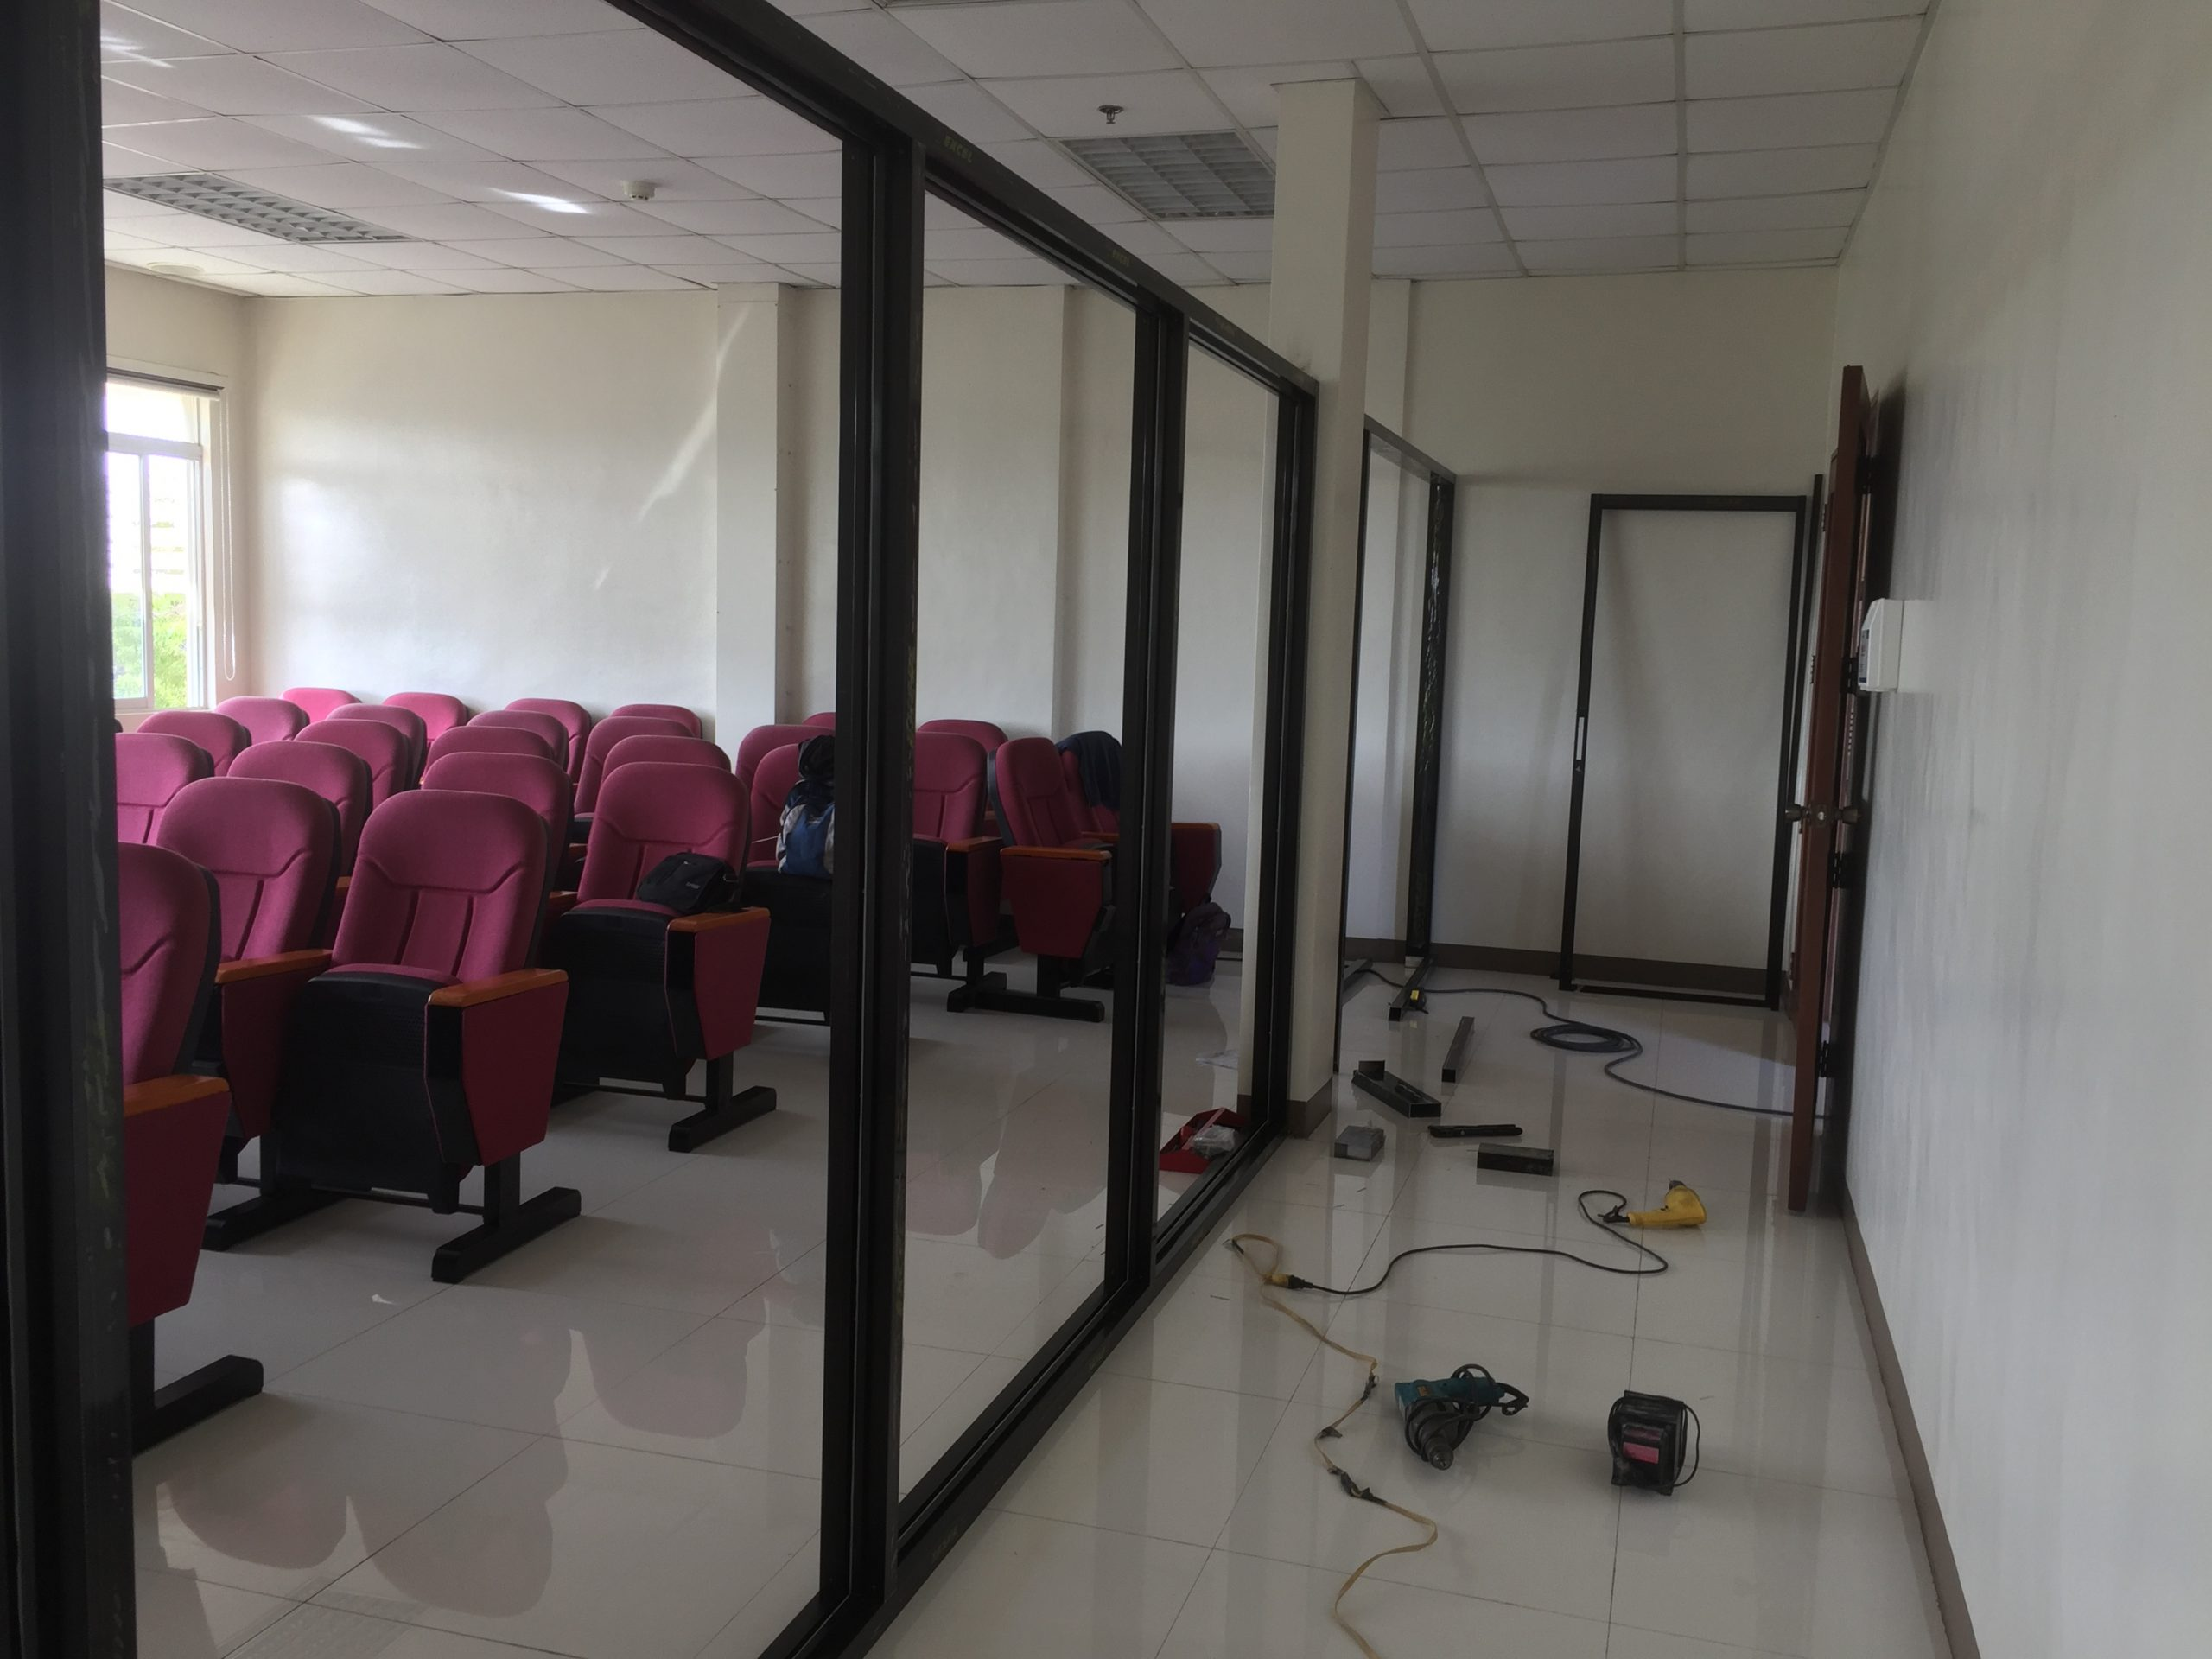 Installation of Glass Partition, PRISM